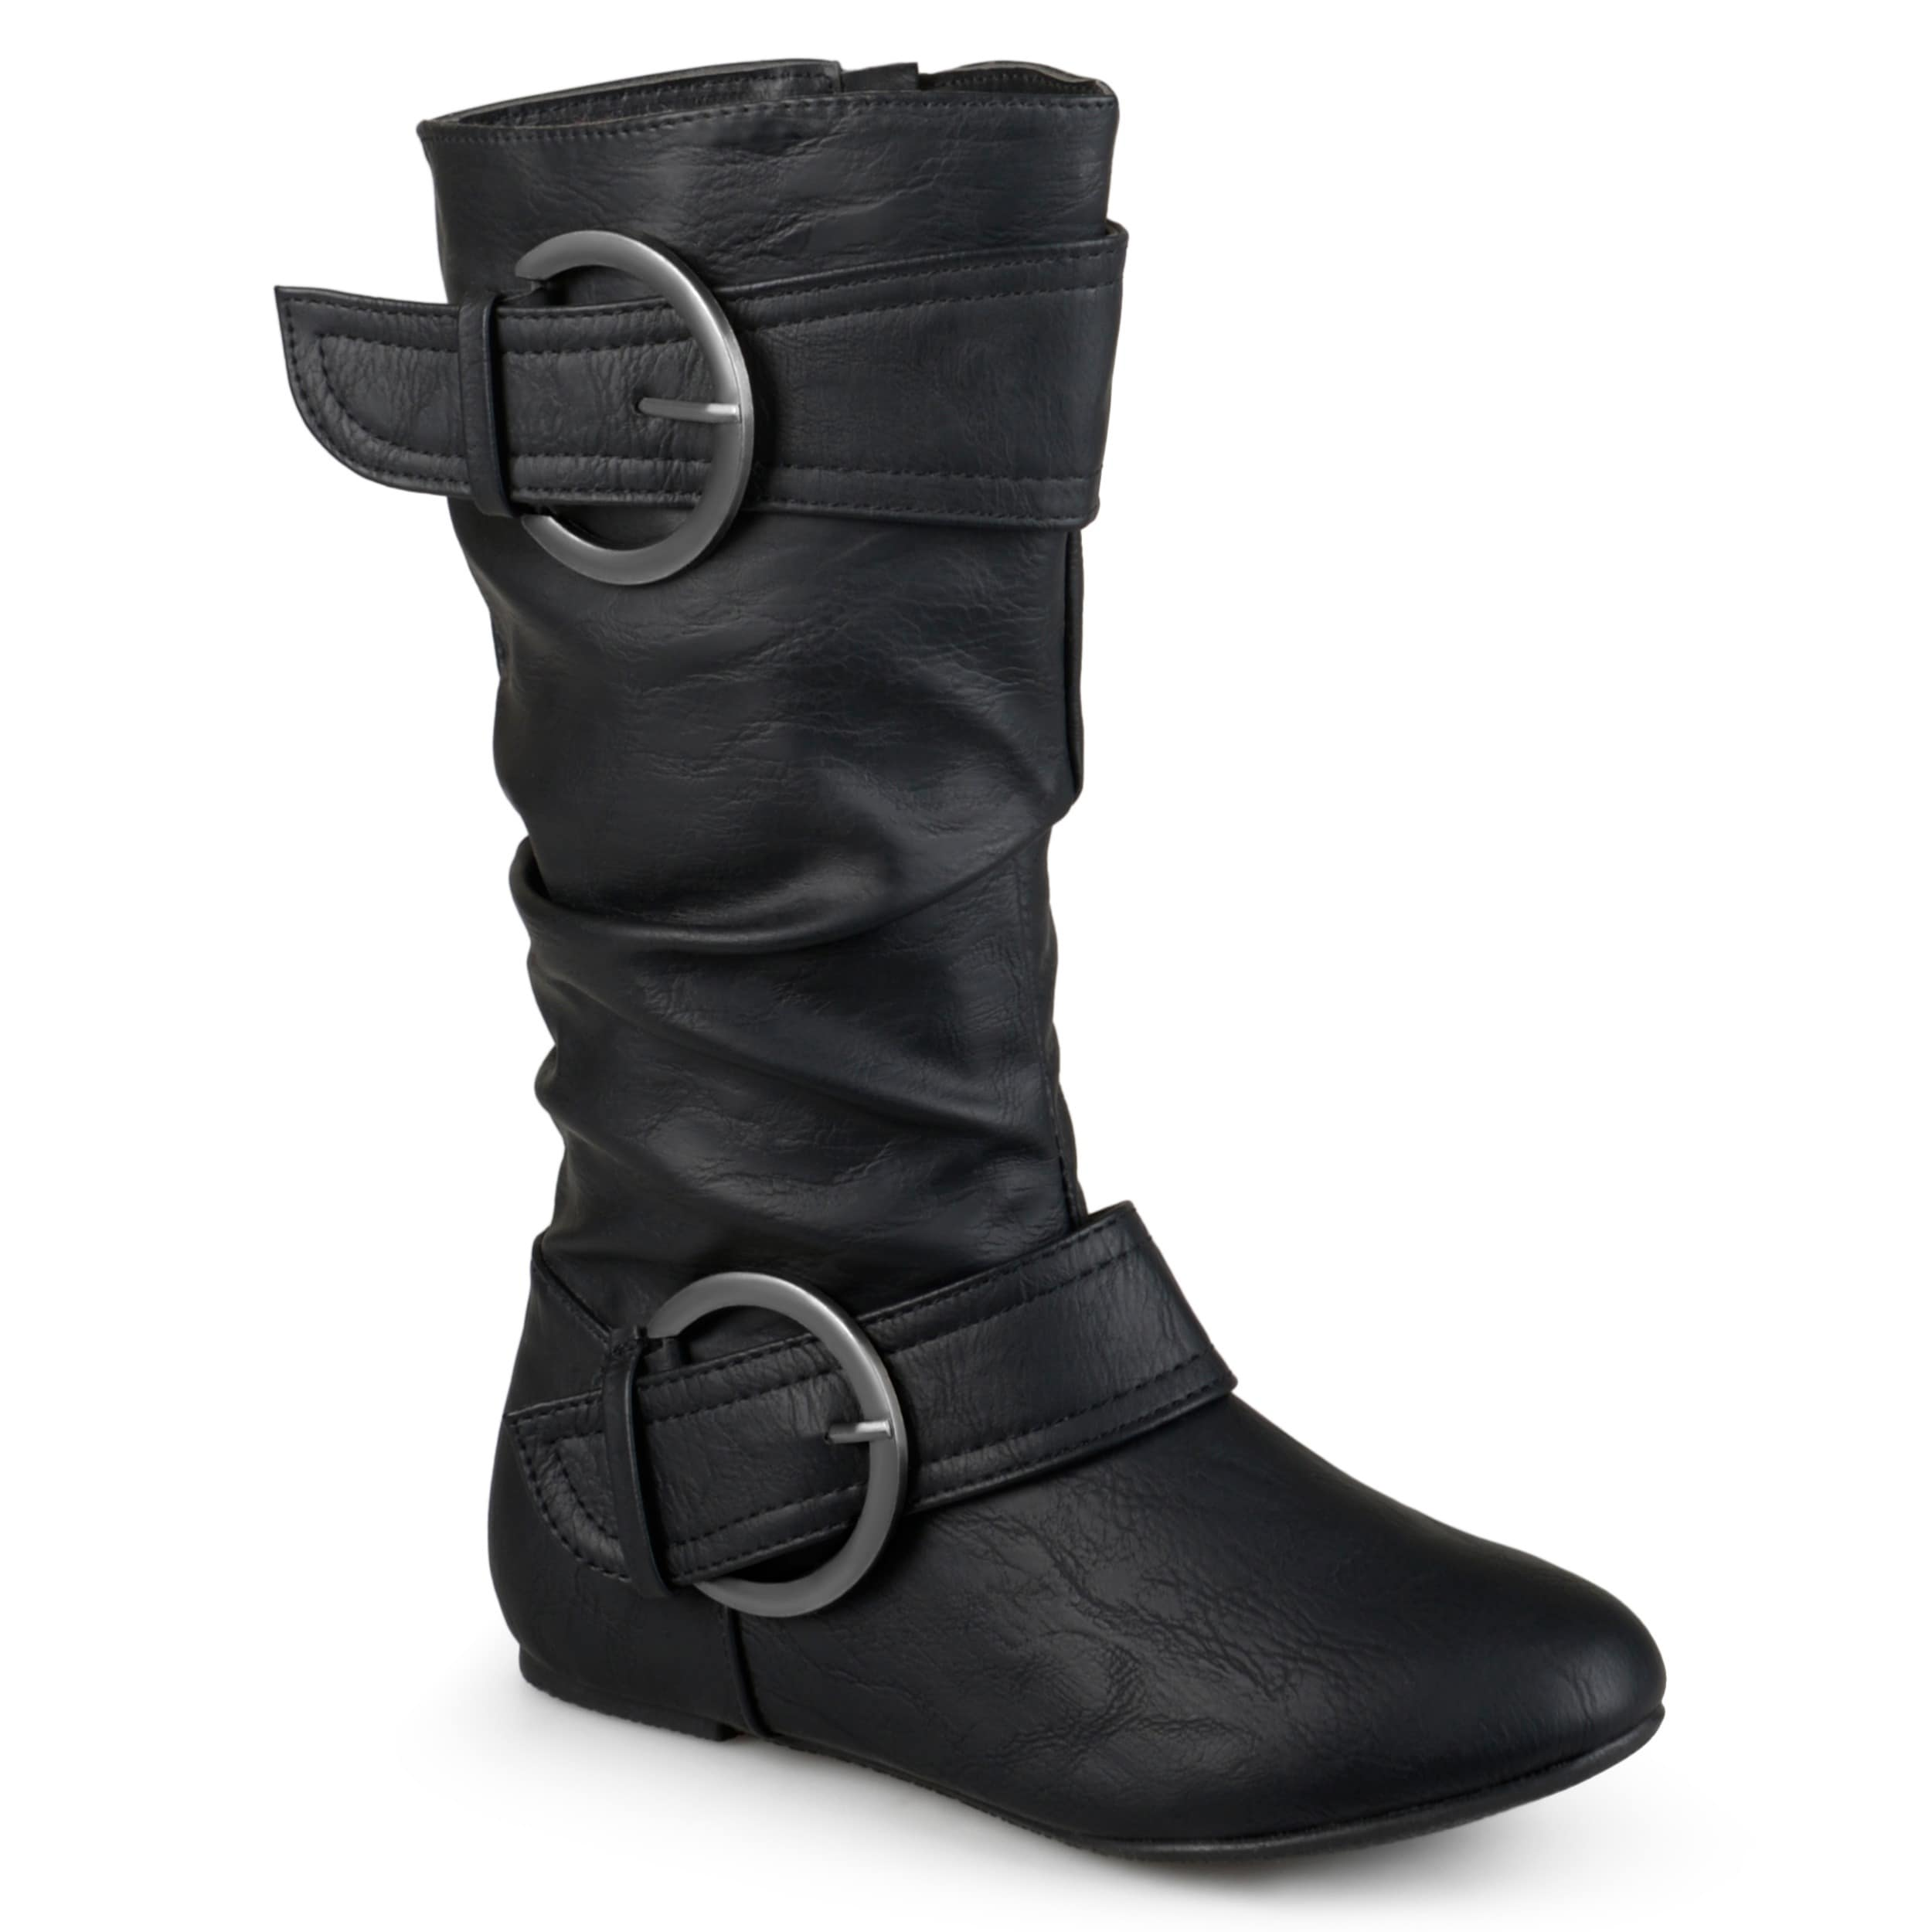 GIRLS FAUX LEATHER MID CALF LOW HEEL SLOUCH BOOTS BLACK SIZE 11-4